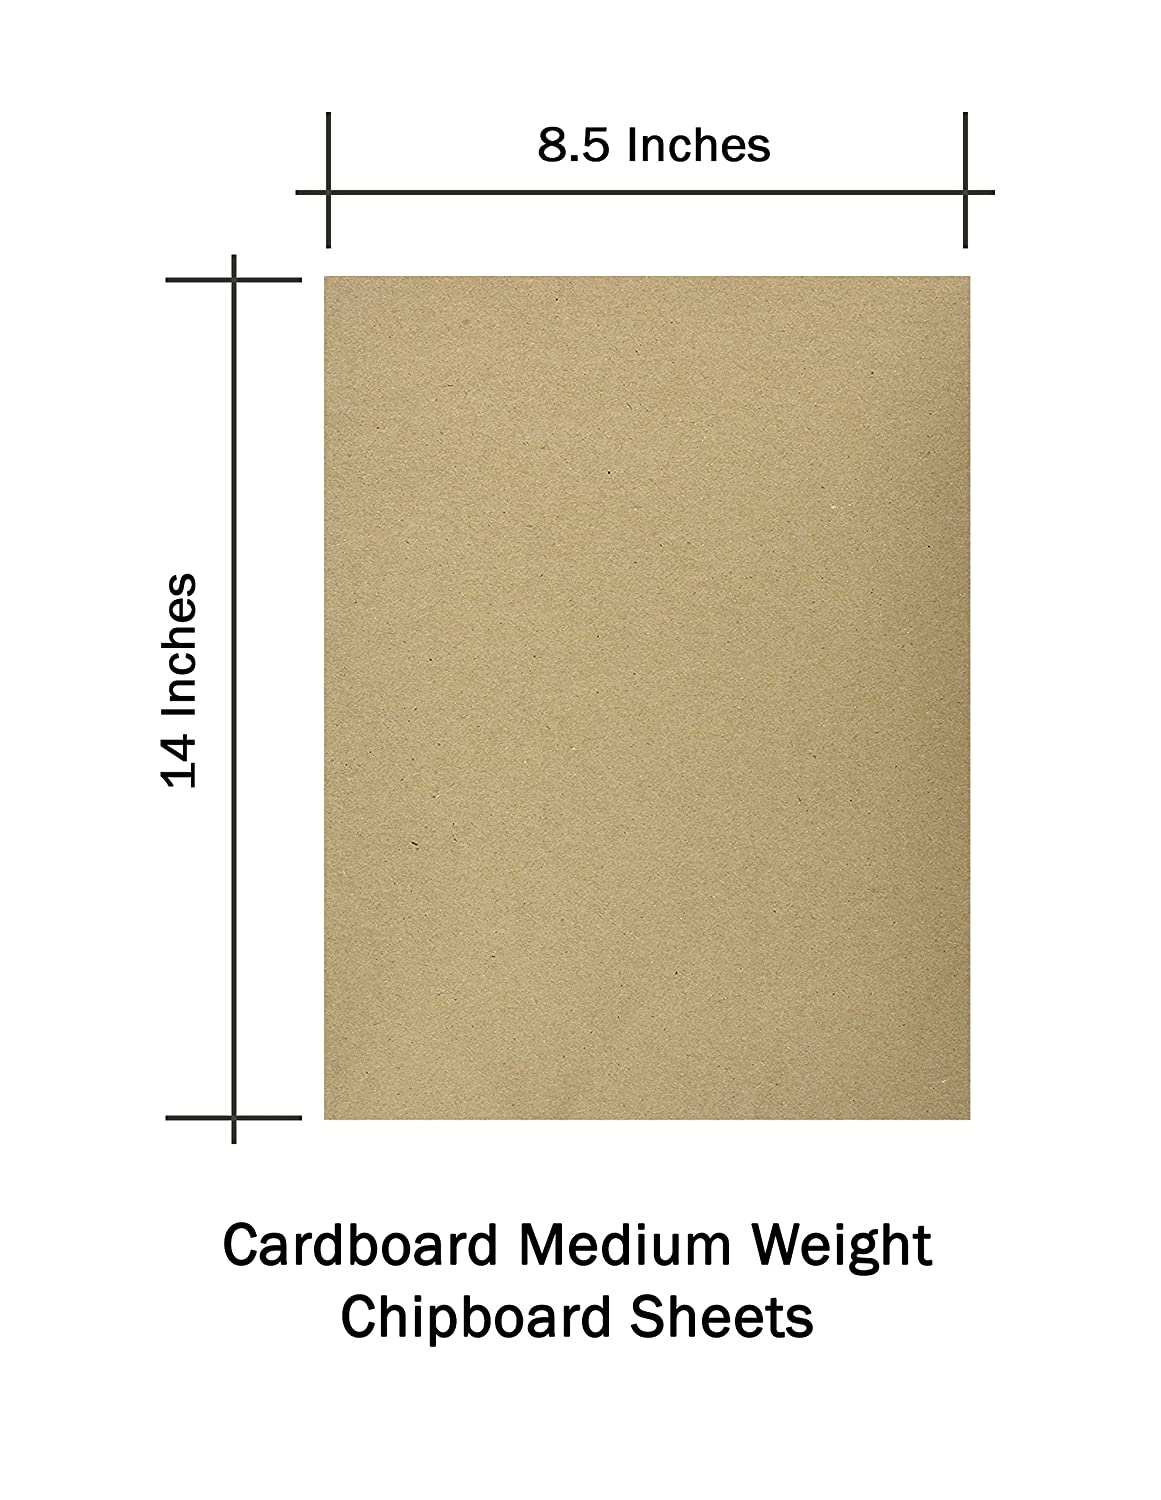 Cardboard Medium Weight Chipboard Sheets 8.5 x 11 25 Per Pack. by Superfine Printing Inc. Chipboard